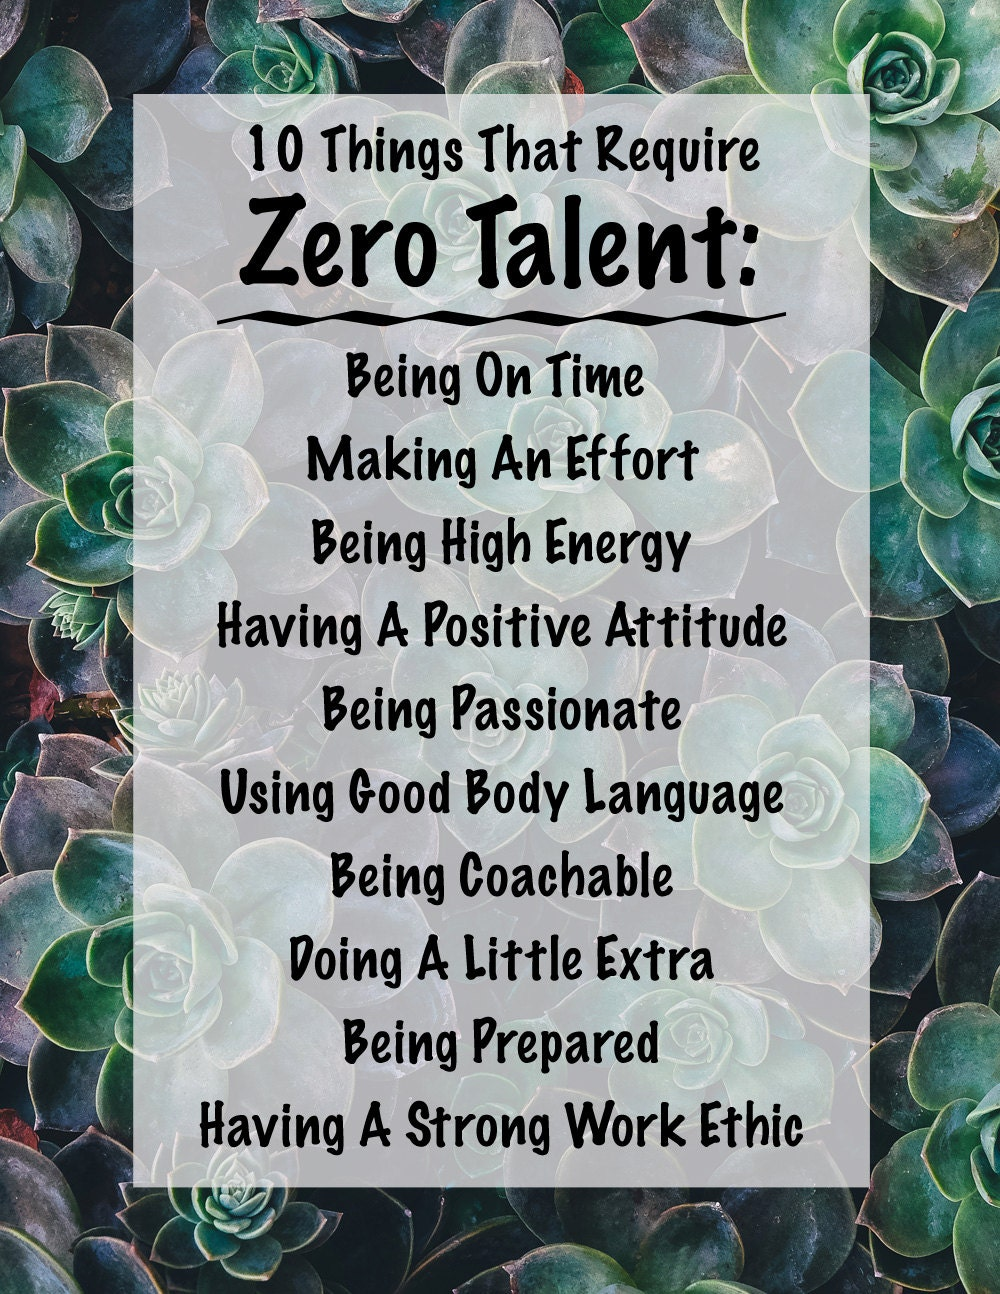 Gargantuan image with regard to 10 things that require zero talent printable